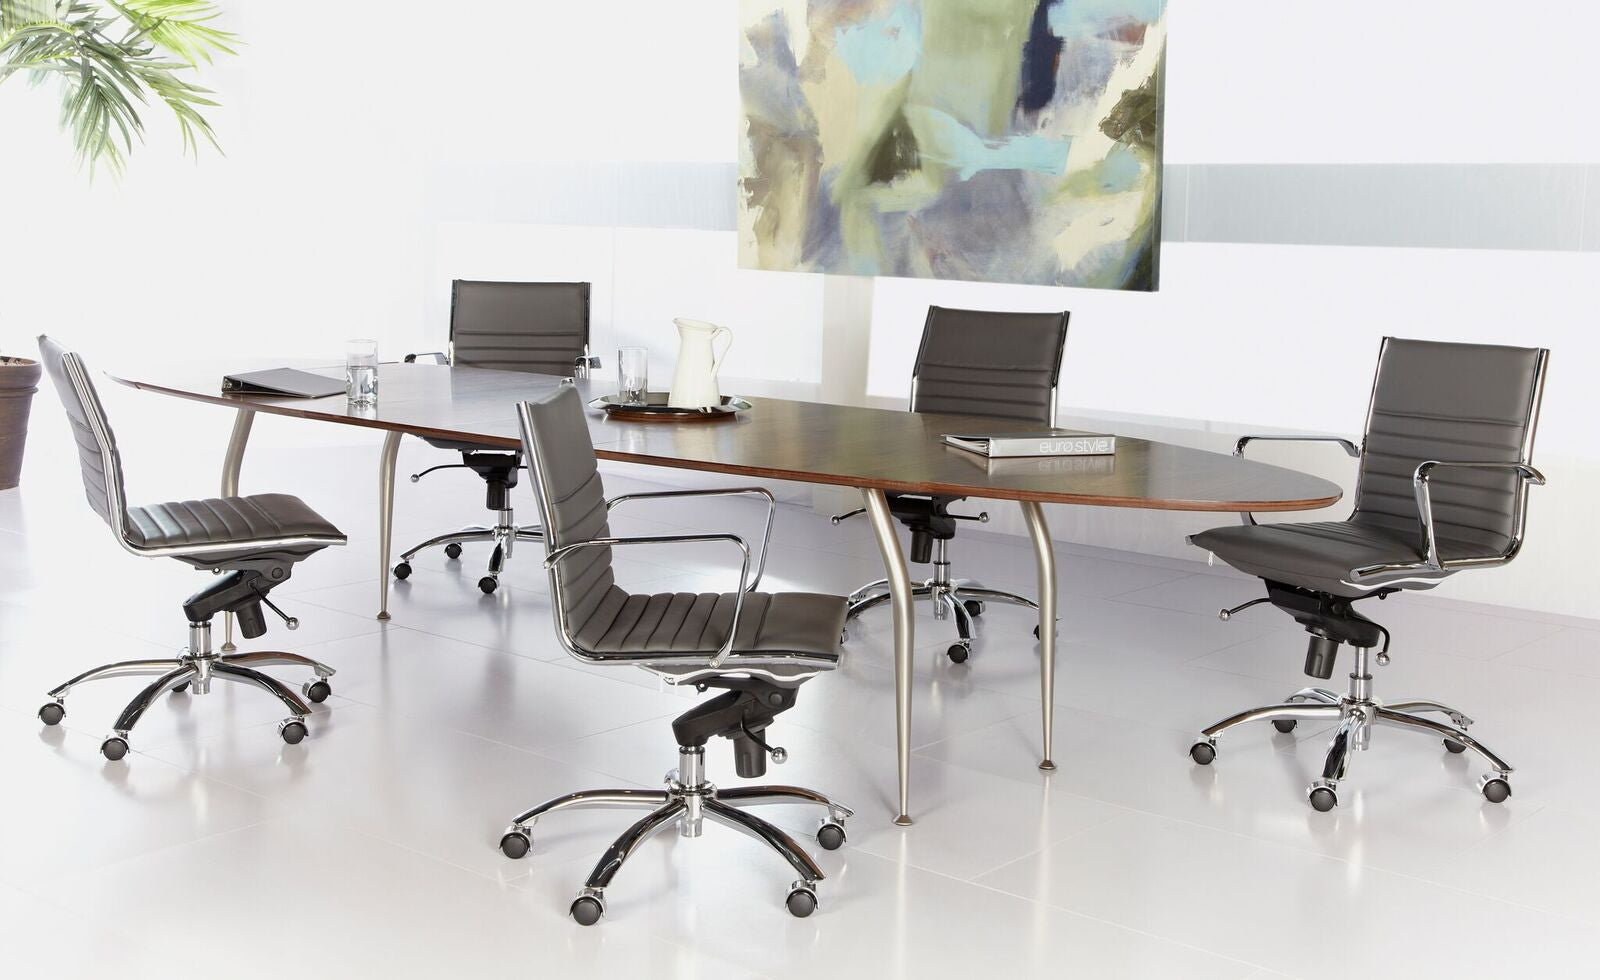 Walnut & Chrome Conference Table - Executive Desk Combination